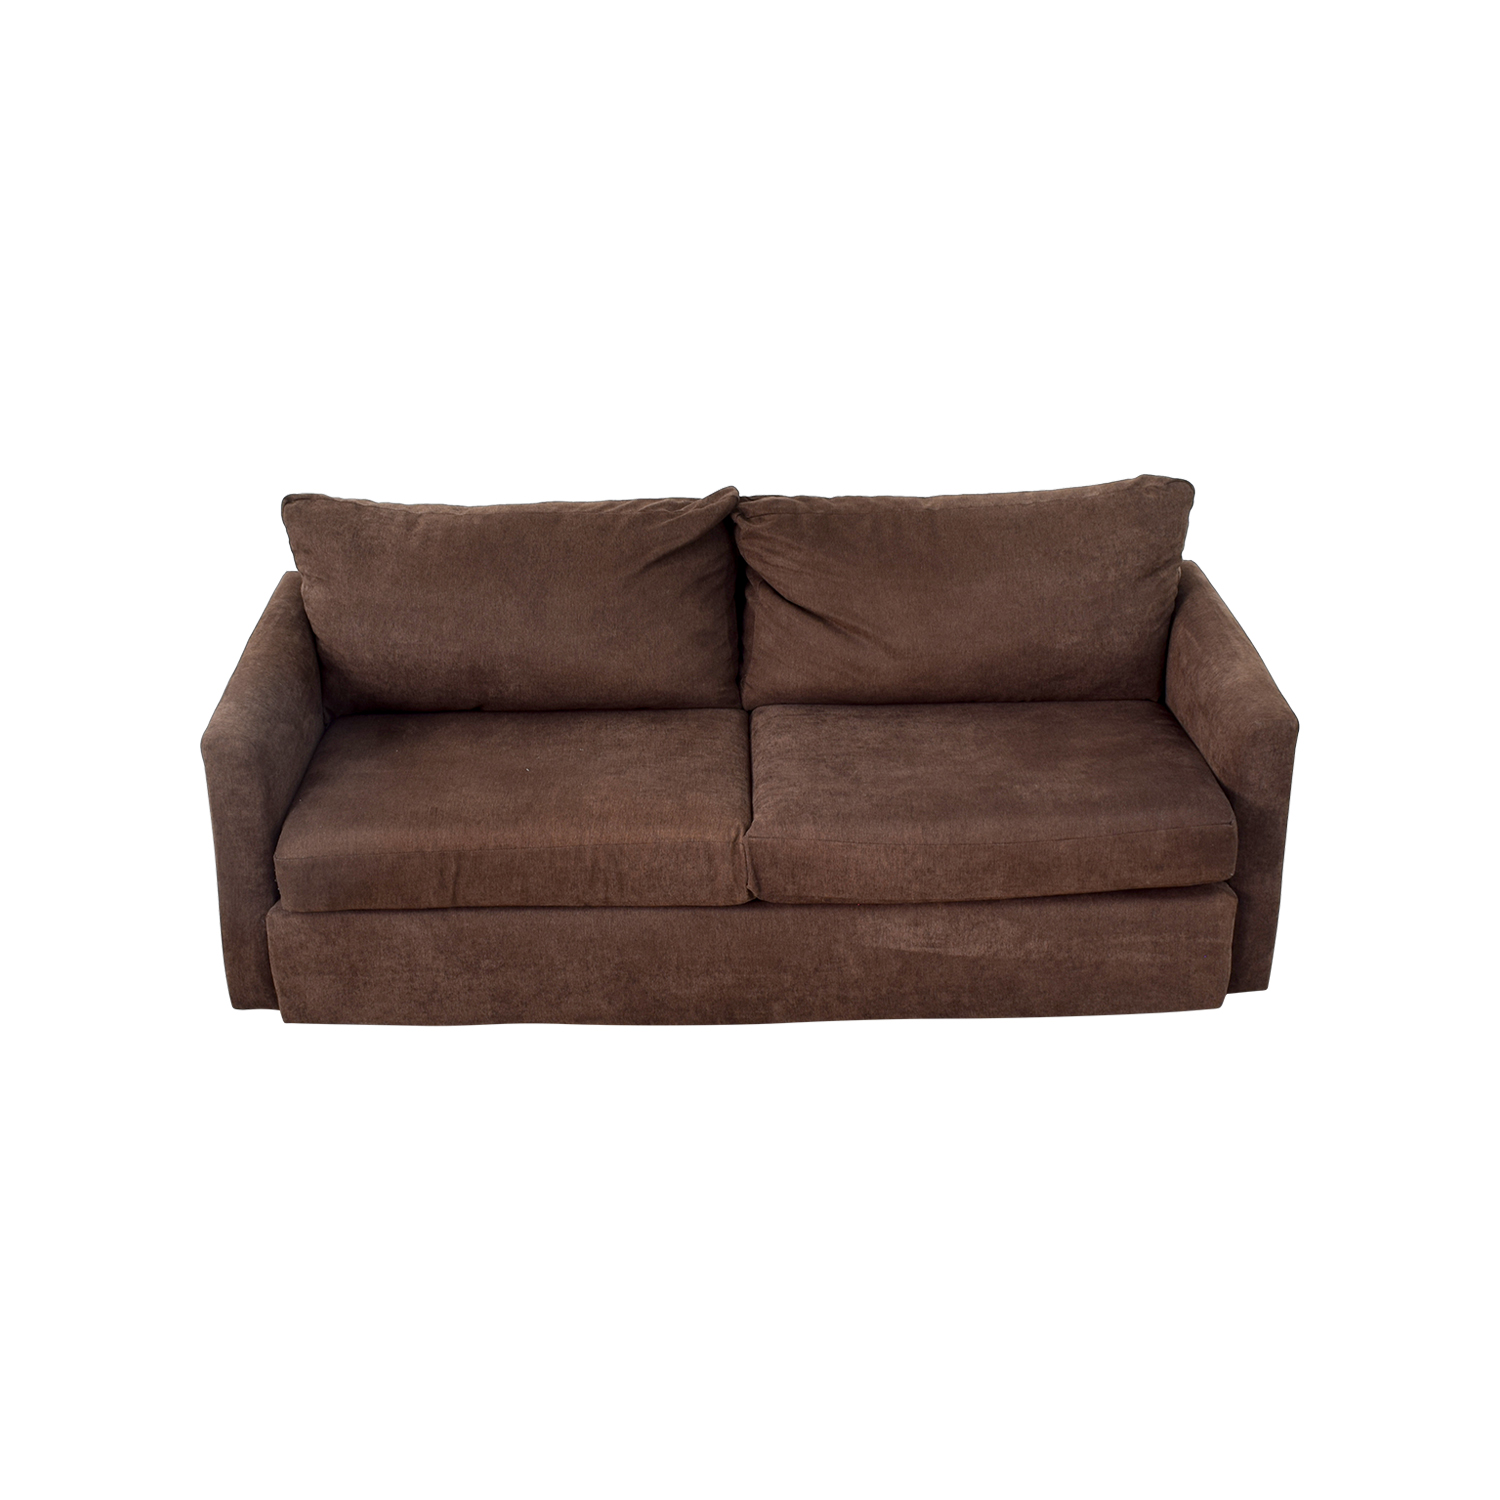 Bob's Furniture Bob's Furniture Brown Loveseat coupon